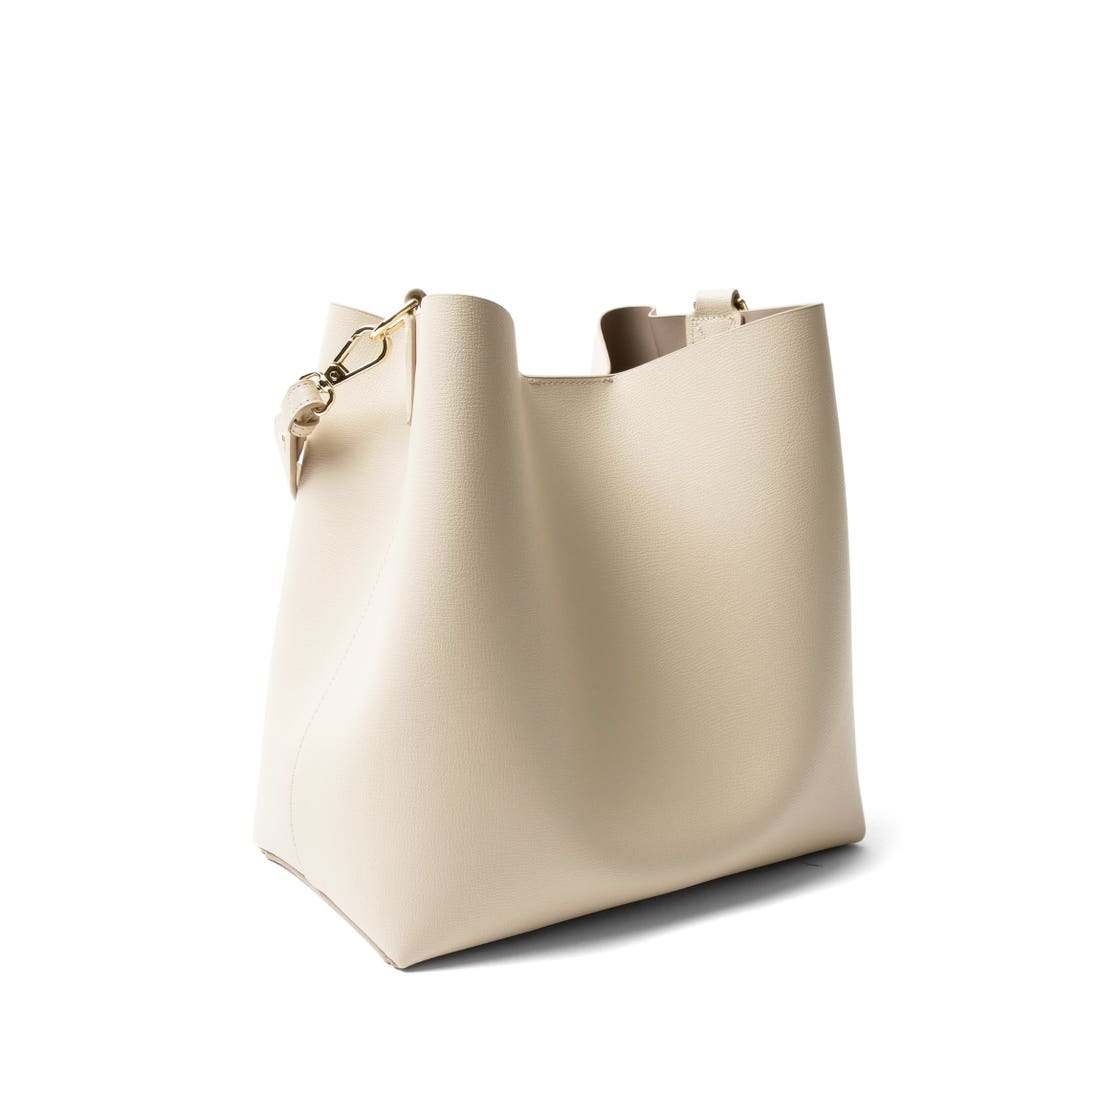 Elizabeth Large Bucket Bag